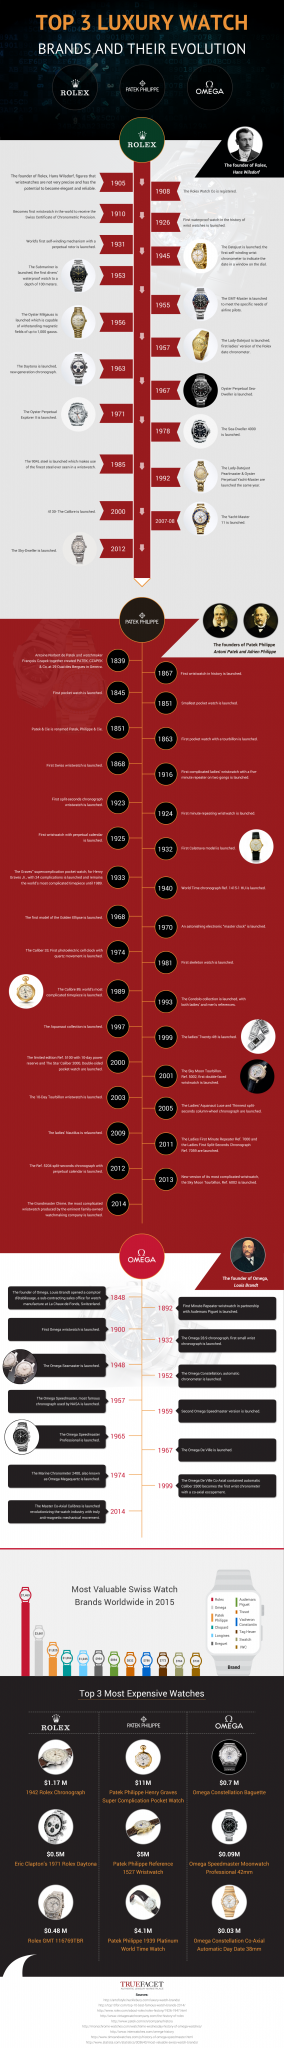 TrueFacet_Top 3 Luxury Brands and Their Evolution-v2